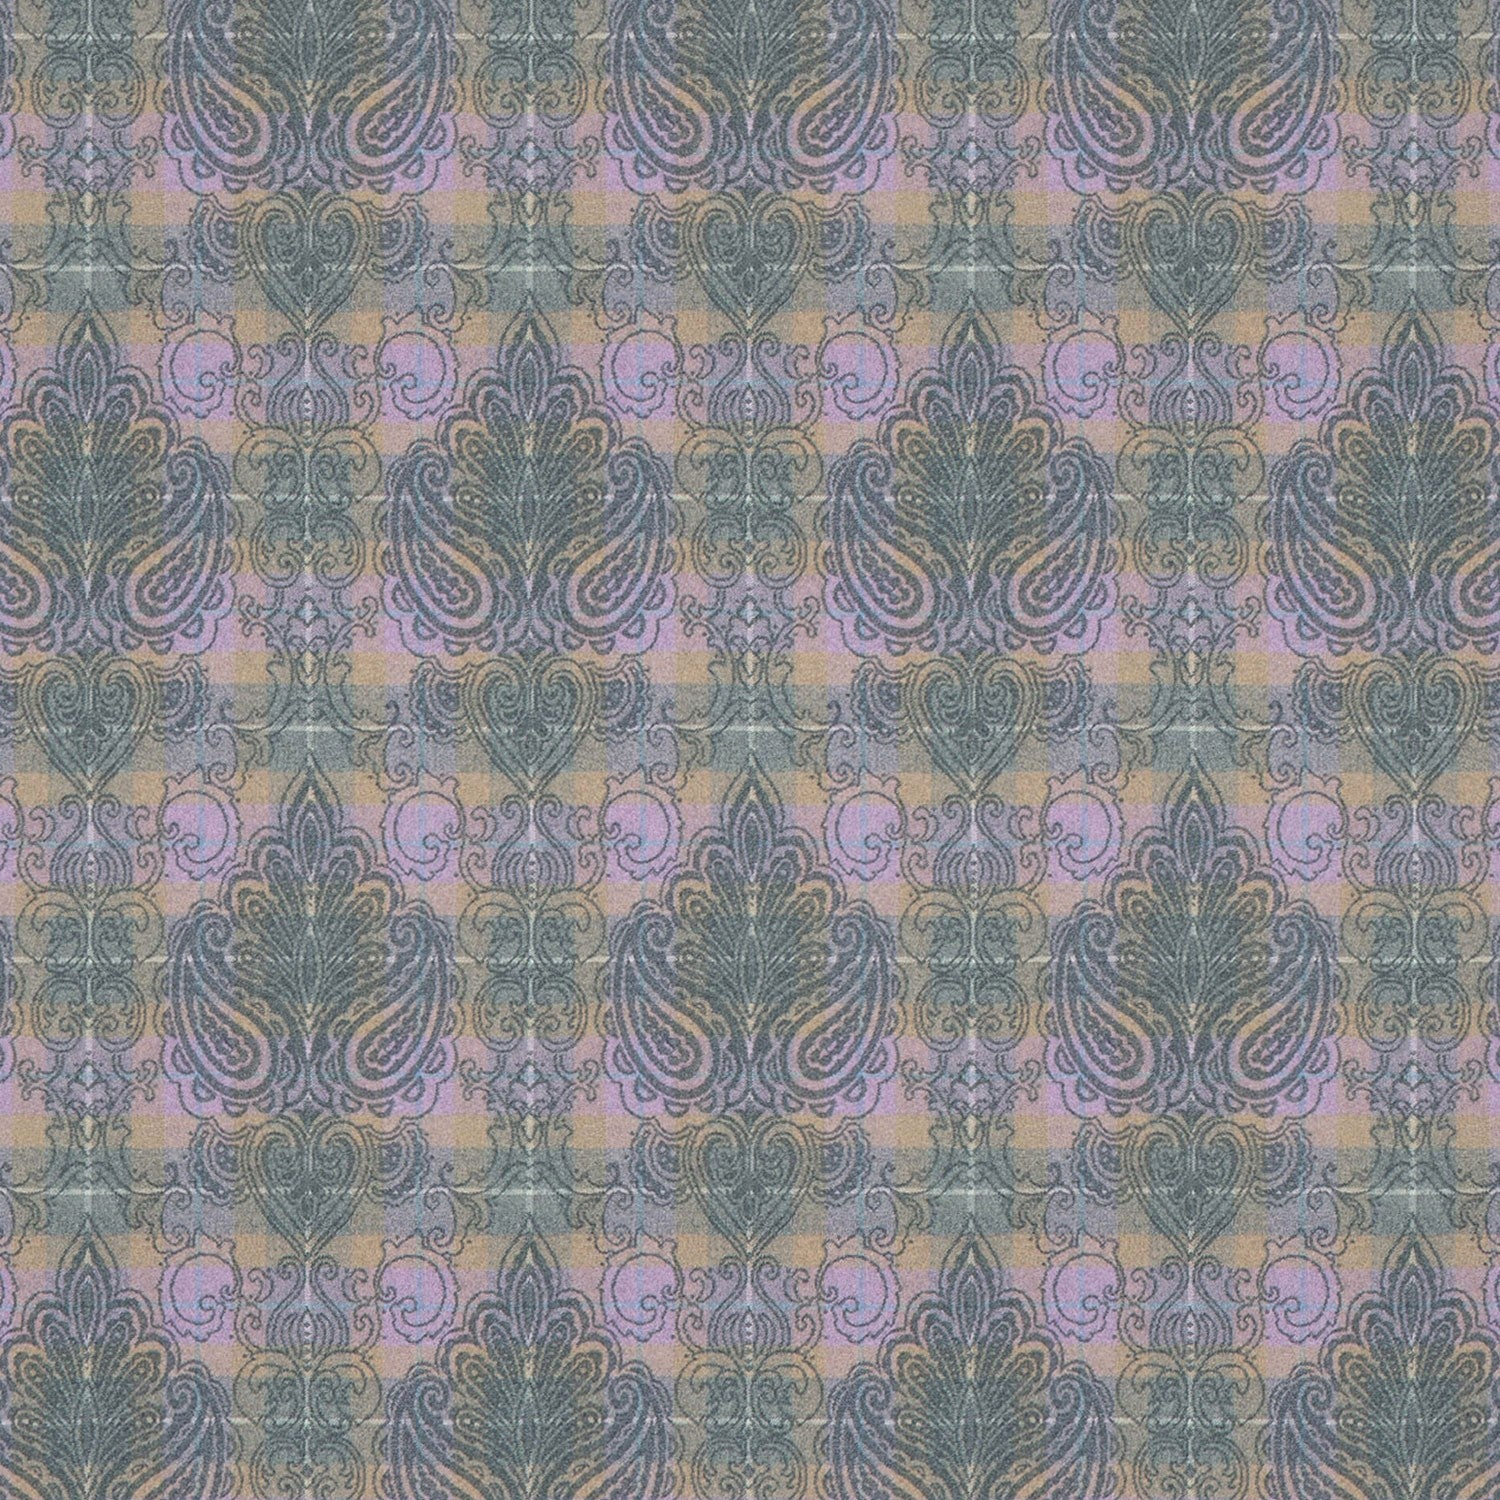 Purple wool check fabric with dark grey woven damask design.